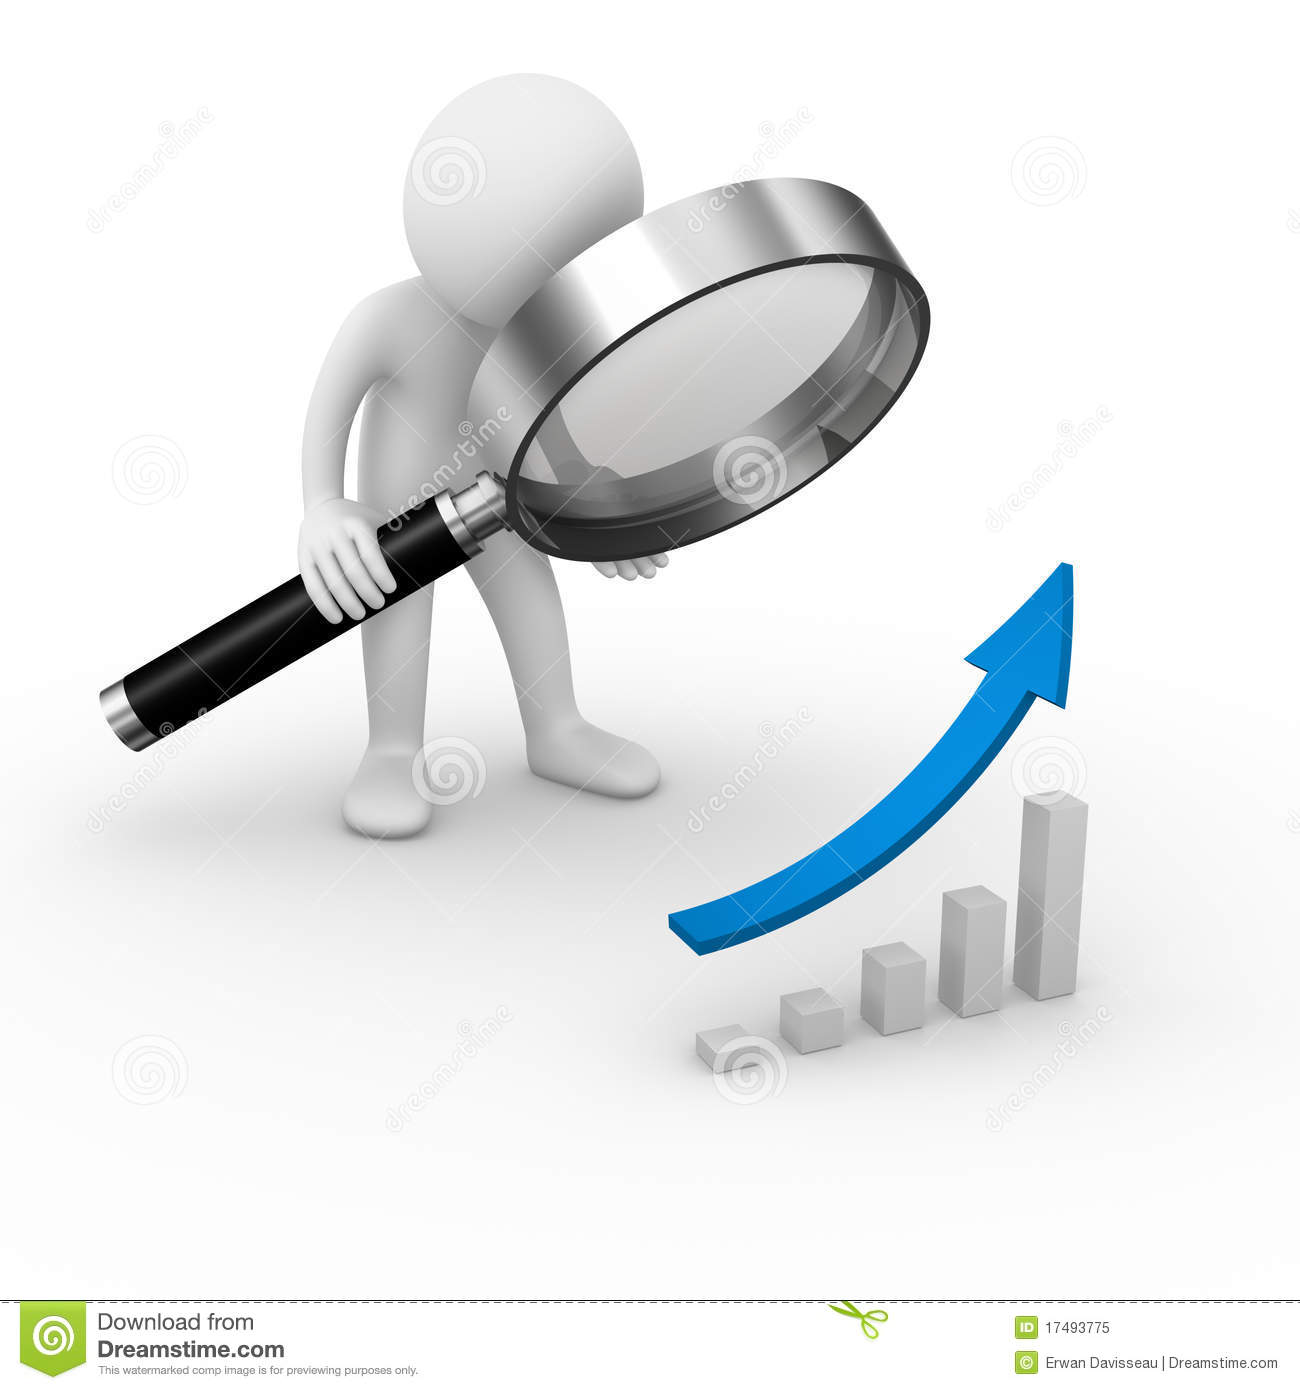 Graph clipart data analysis Panda analysis%20clipart Free Clipart Analysis